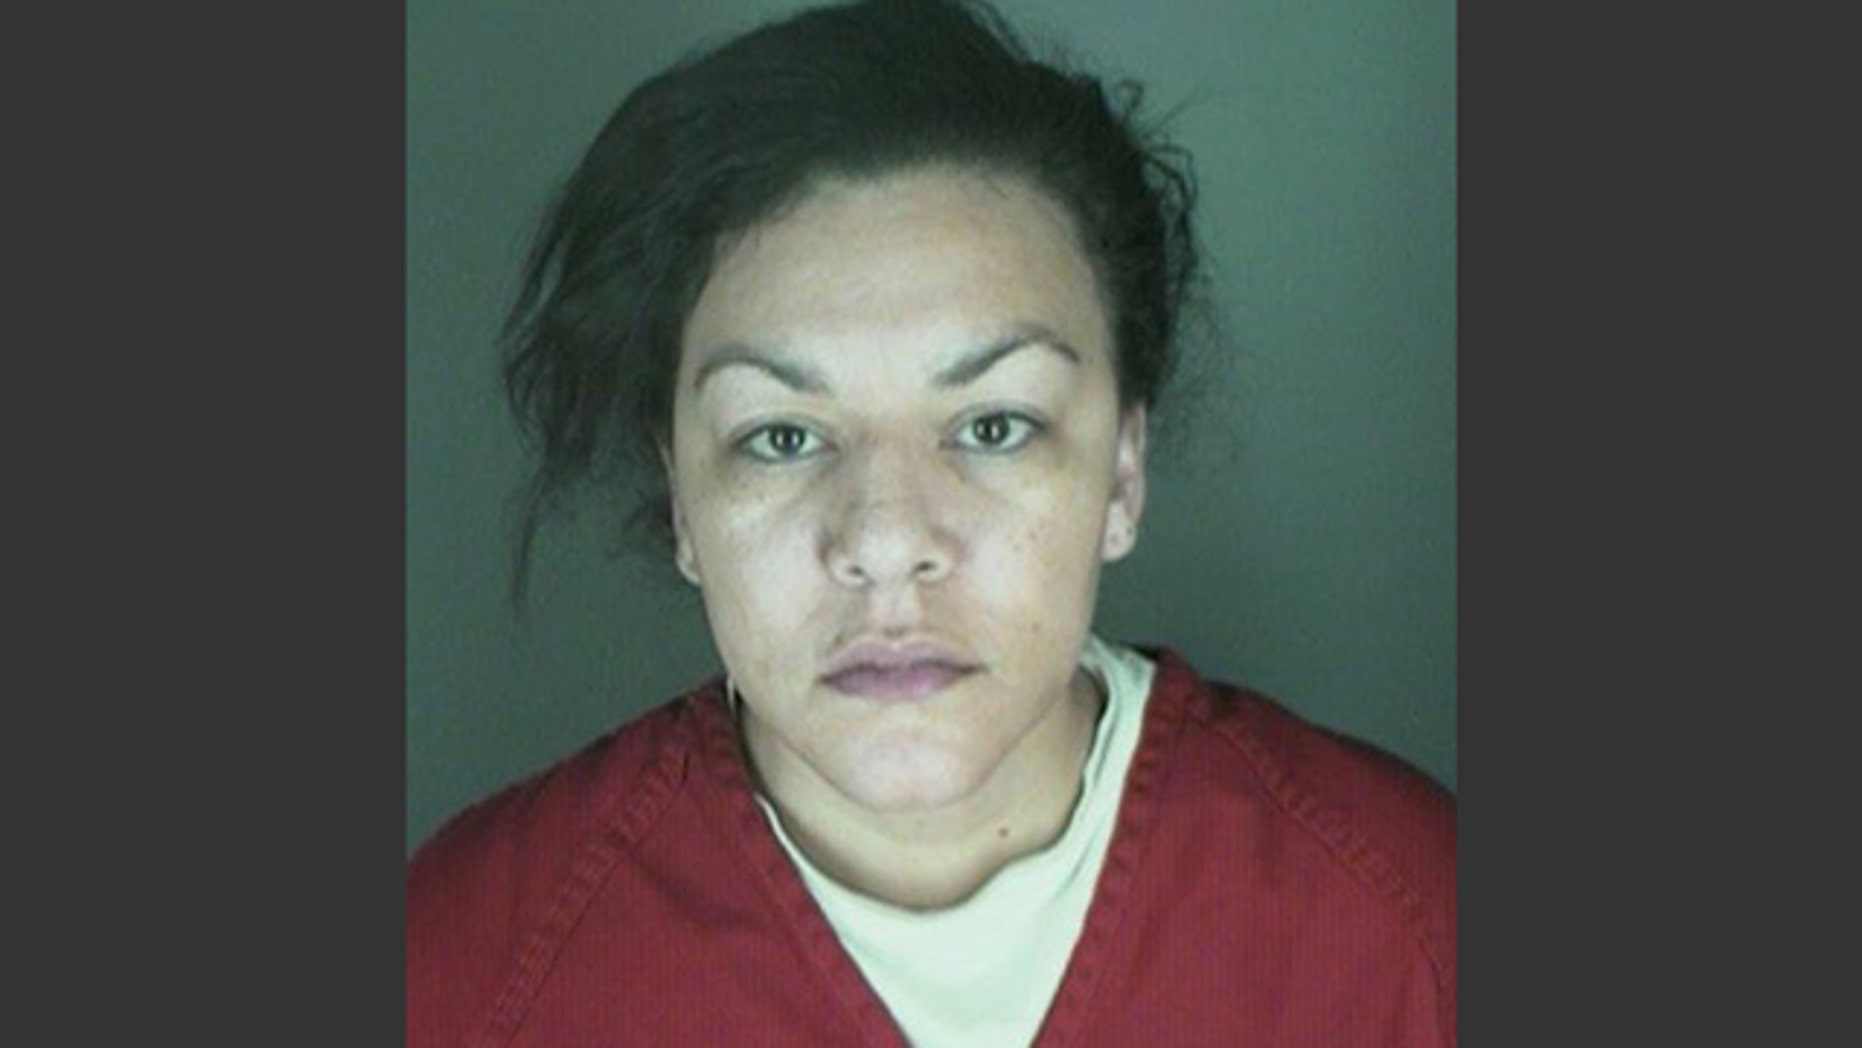 This undated booking photo provided by the Longmont Police Department shows Dynel Lane, 34, who is accused of stabbing a pregnant woman in the stomach and removing her baby, while the expectant mother visited her home to buy baby clothes advertised on Craigslist, authorities said. (AP Photo/ Longmont Police Department)